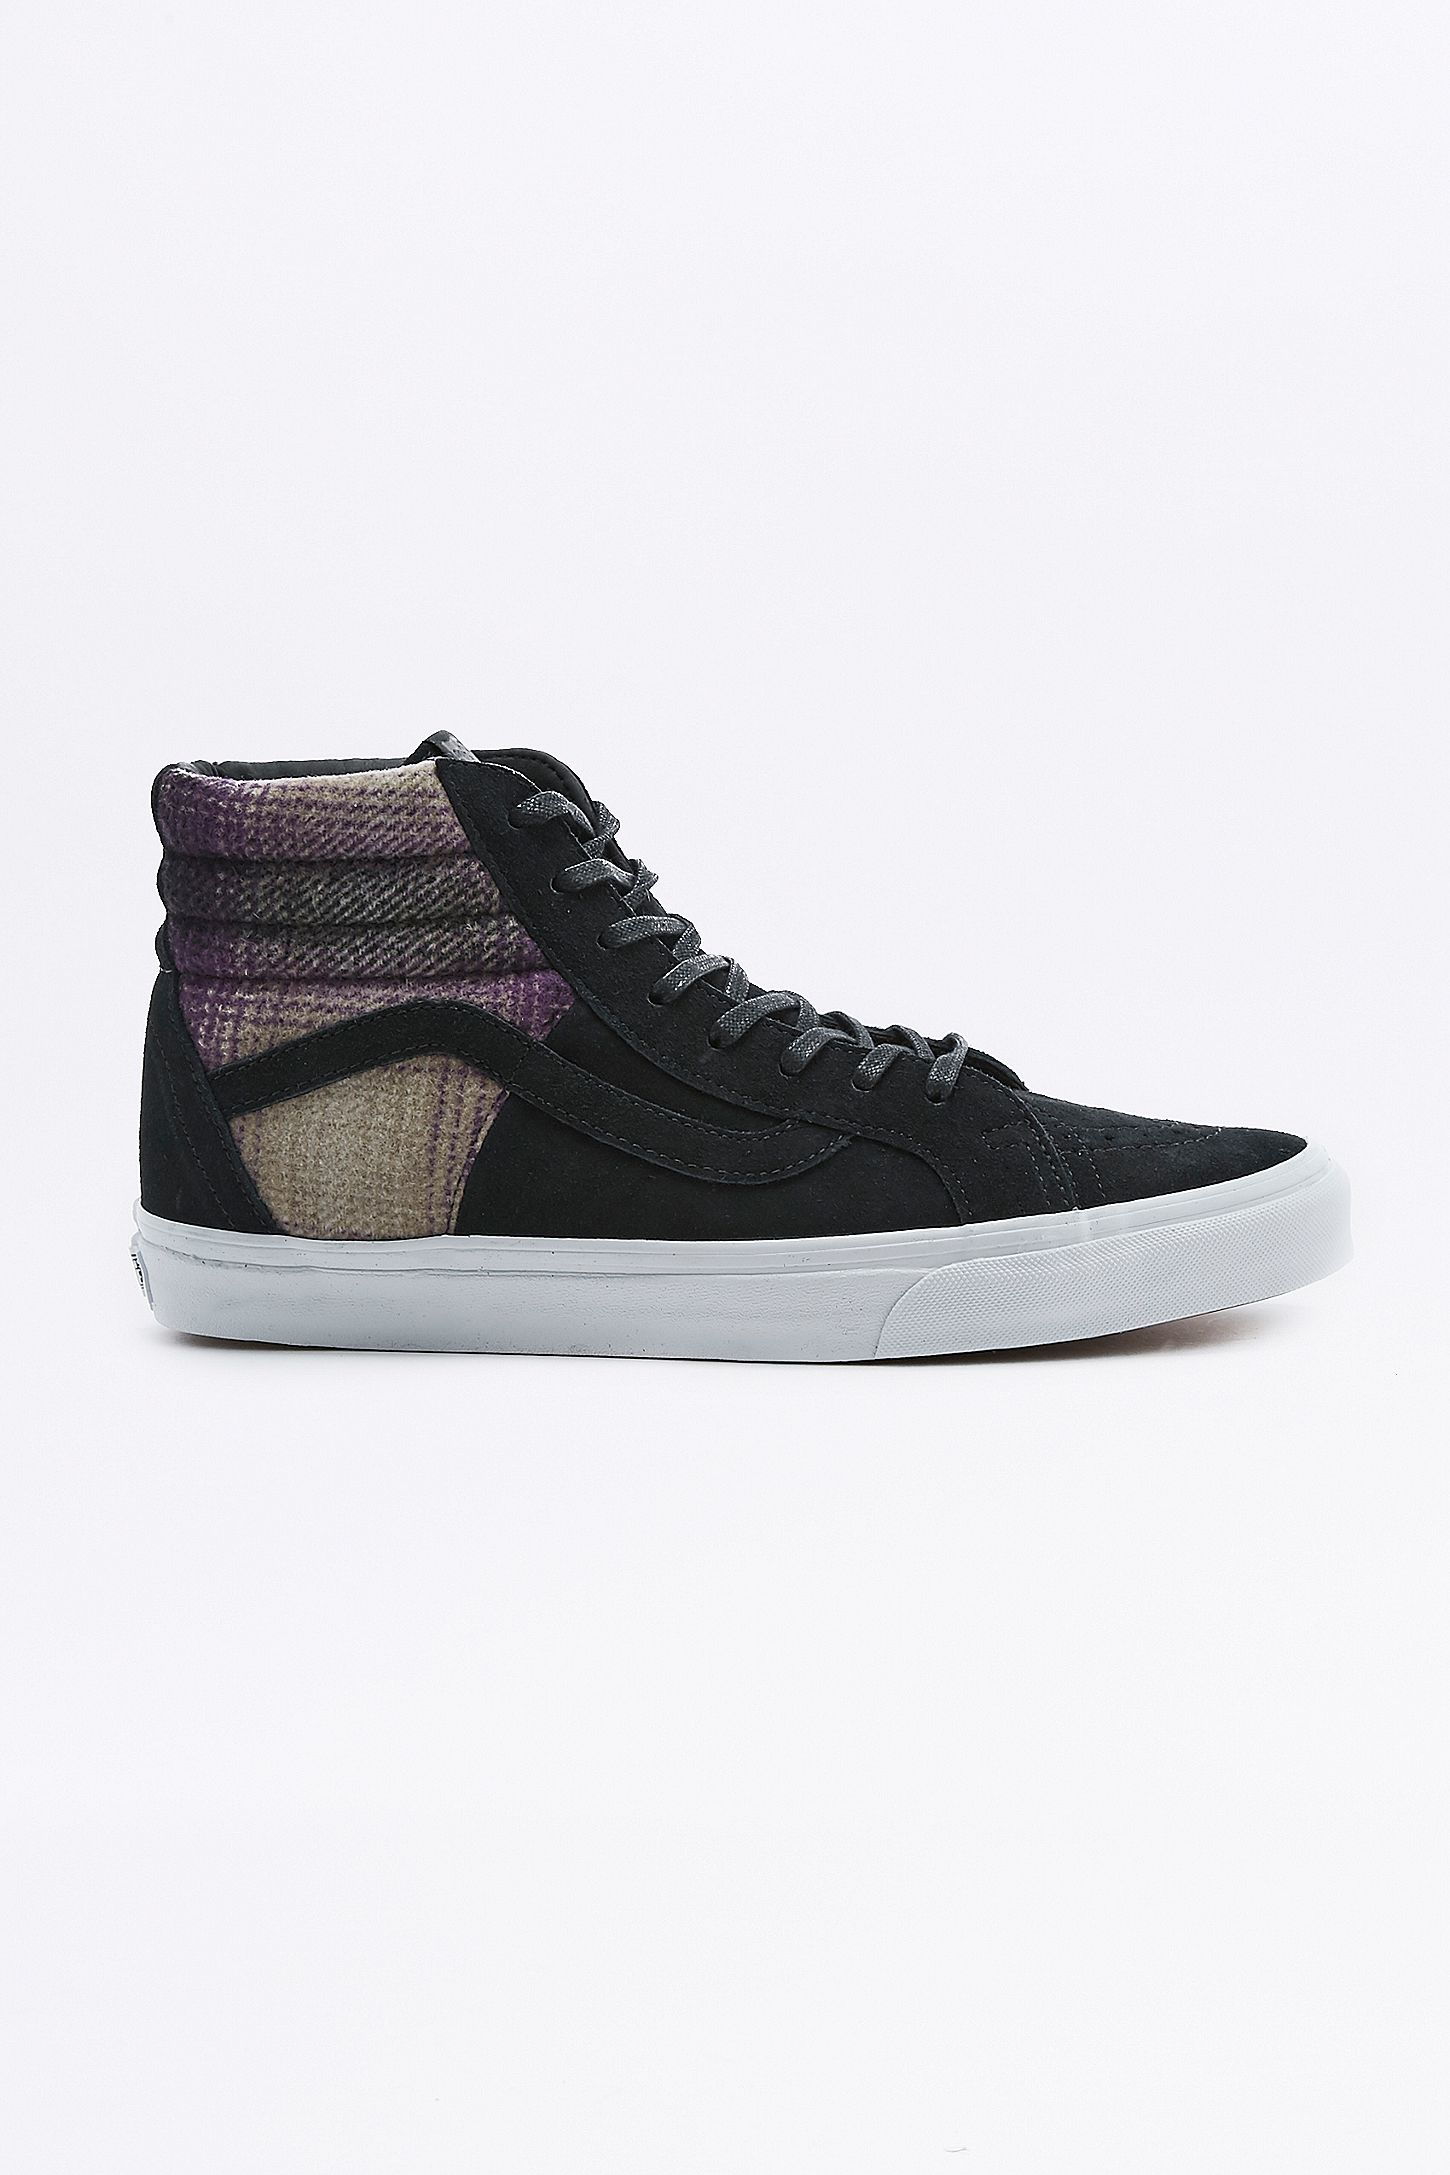 b66a62c552257a Vans Sk8-Hi 46 DX Black Mountain Plaid Trainers. Click on image to zoom.  Hover to zoom. Double Tap to Zoom